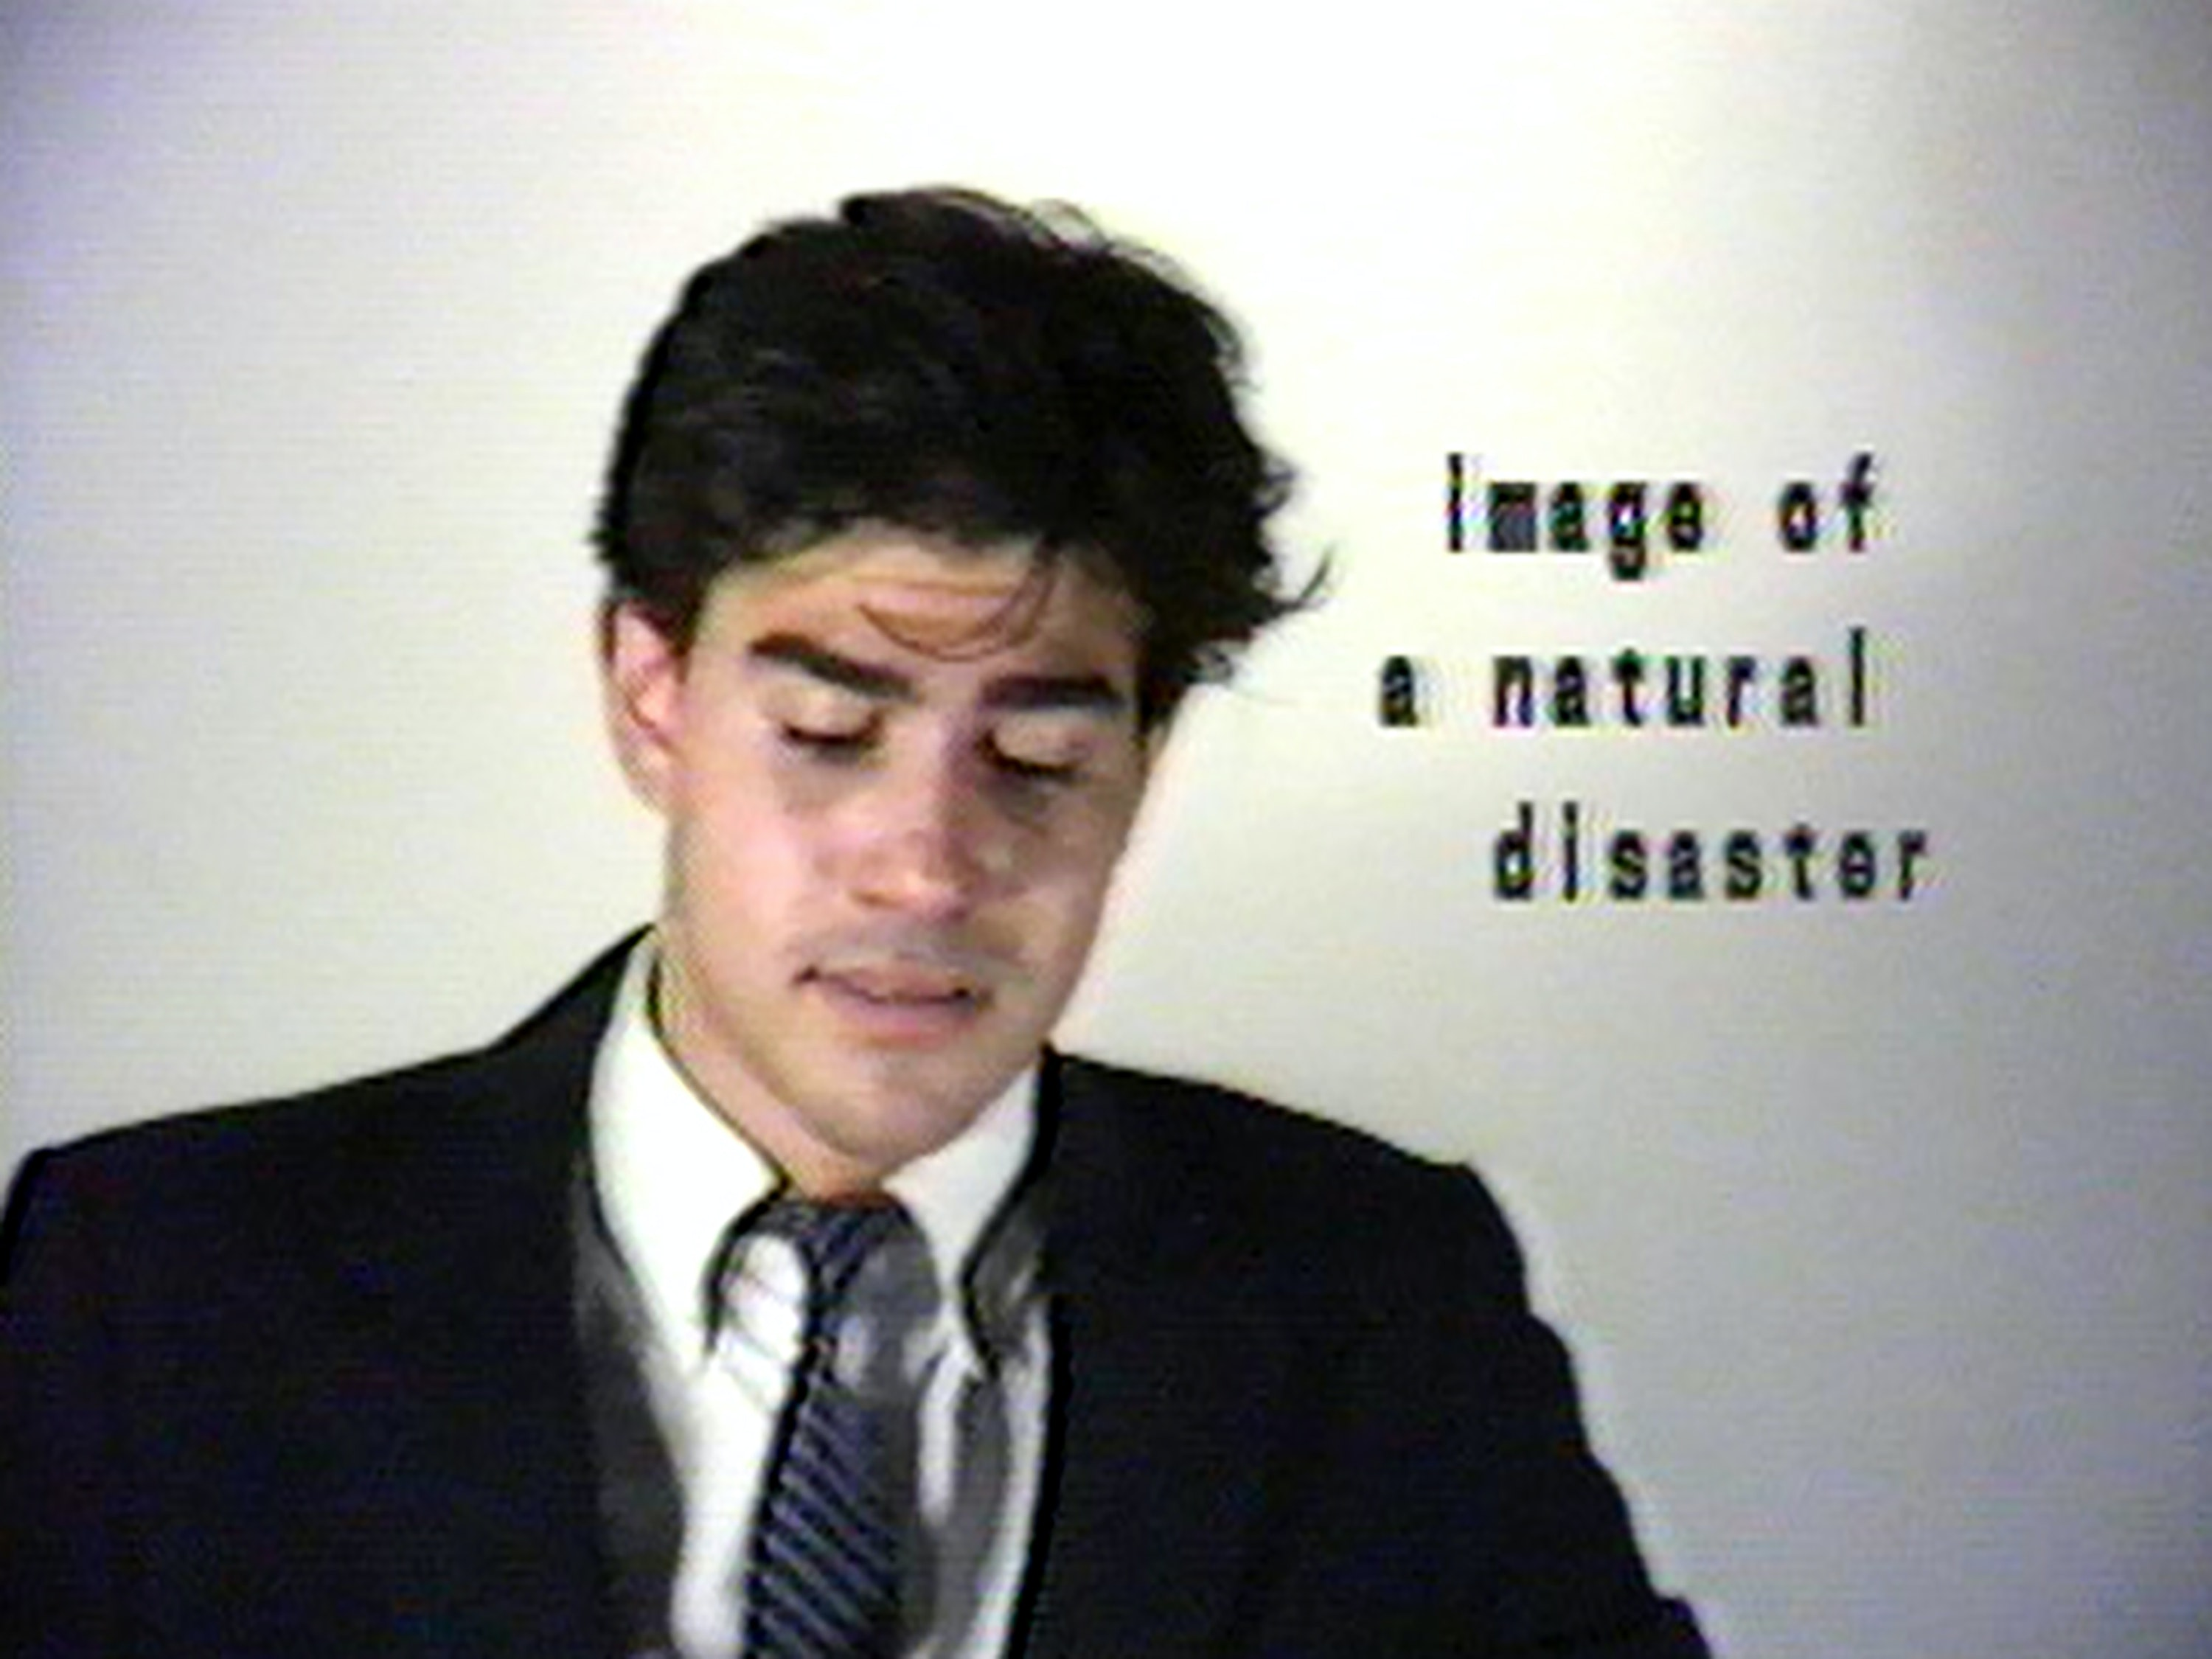 "A video shows a man in a suit and tie, appearing somewhat like a newscaster. The words ""image of a natural disaster"" appear in a space next to his head."